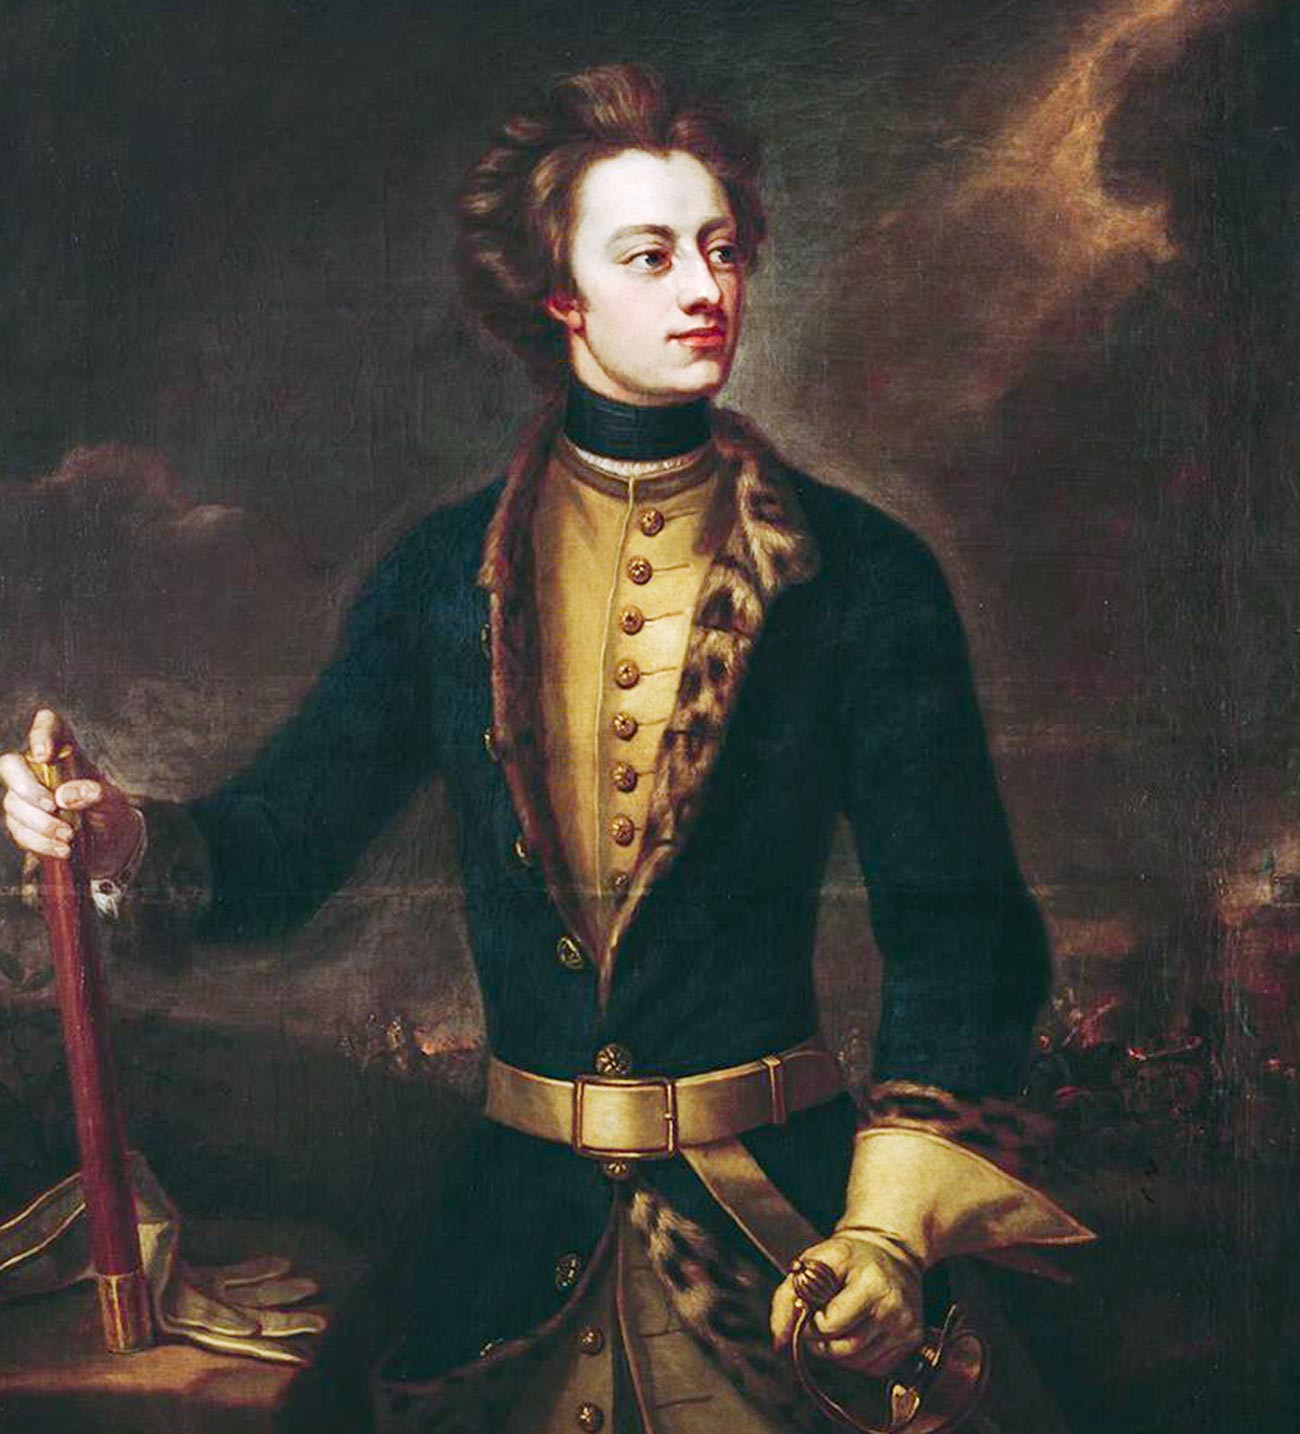 King Charles XII of Sweden.